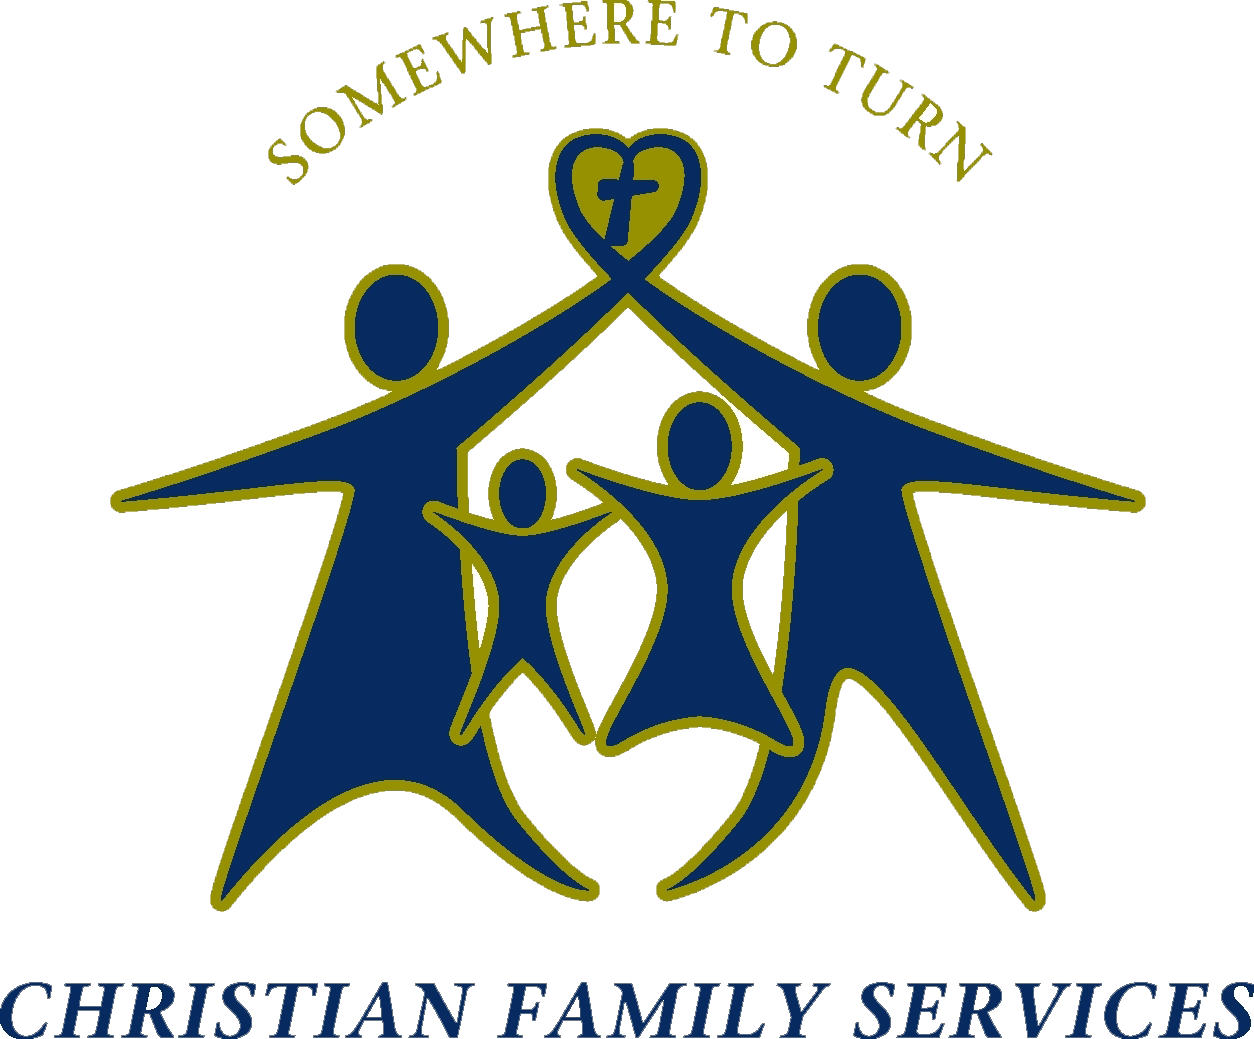 Family Services Png - Christian Family Services – 17105 W. Twelve Mile Road, Southfield ...